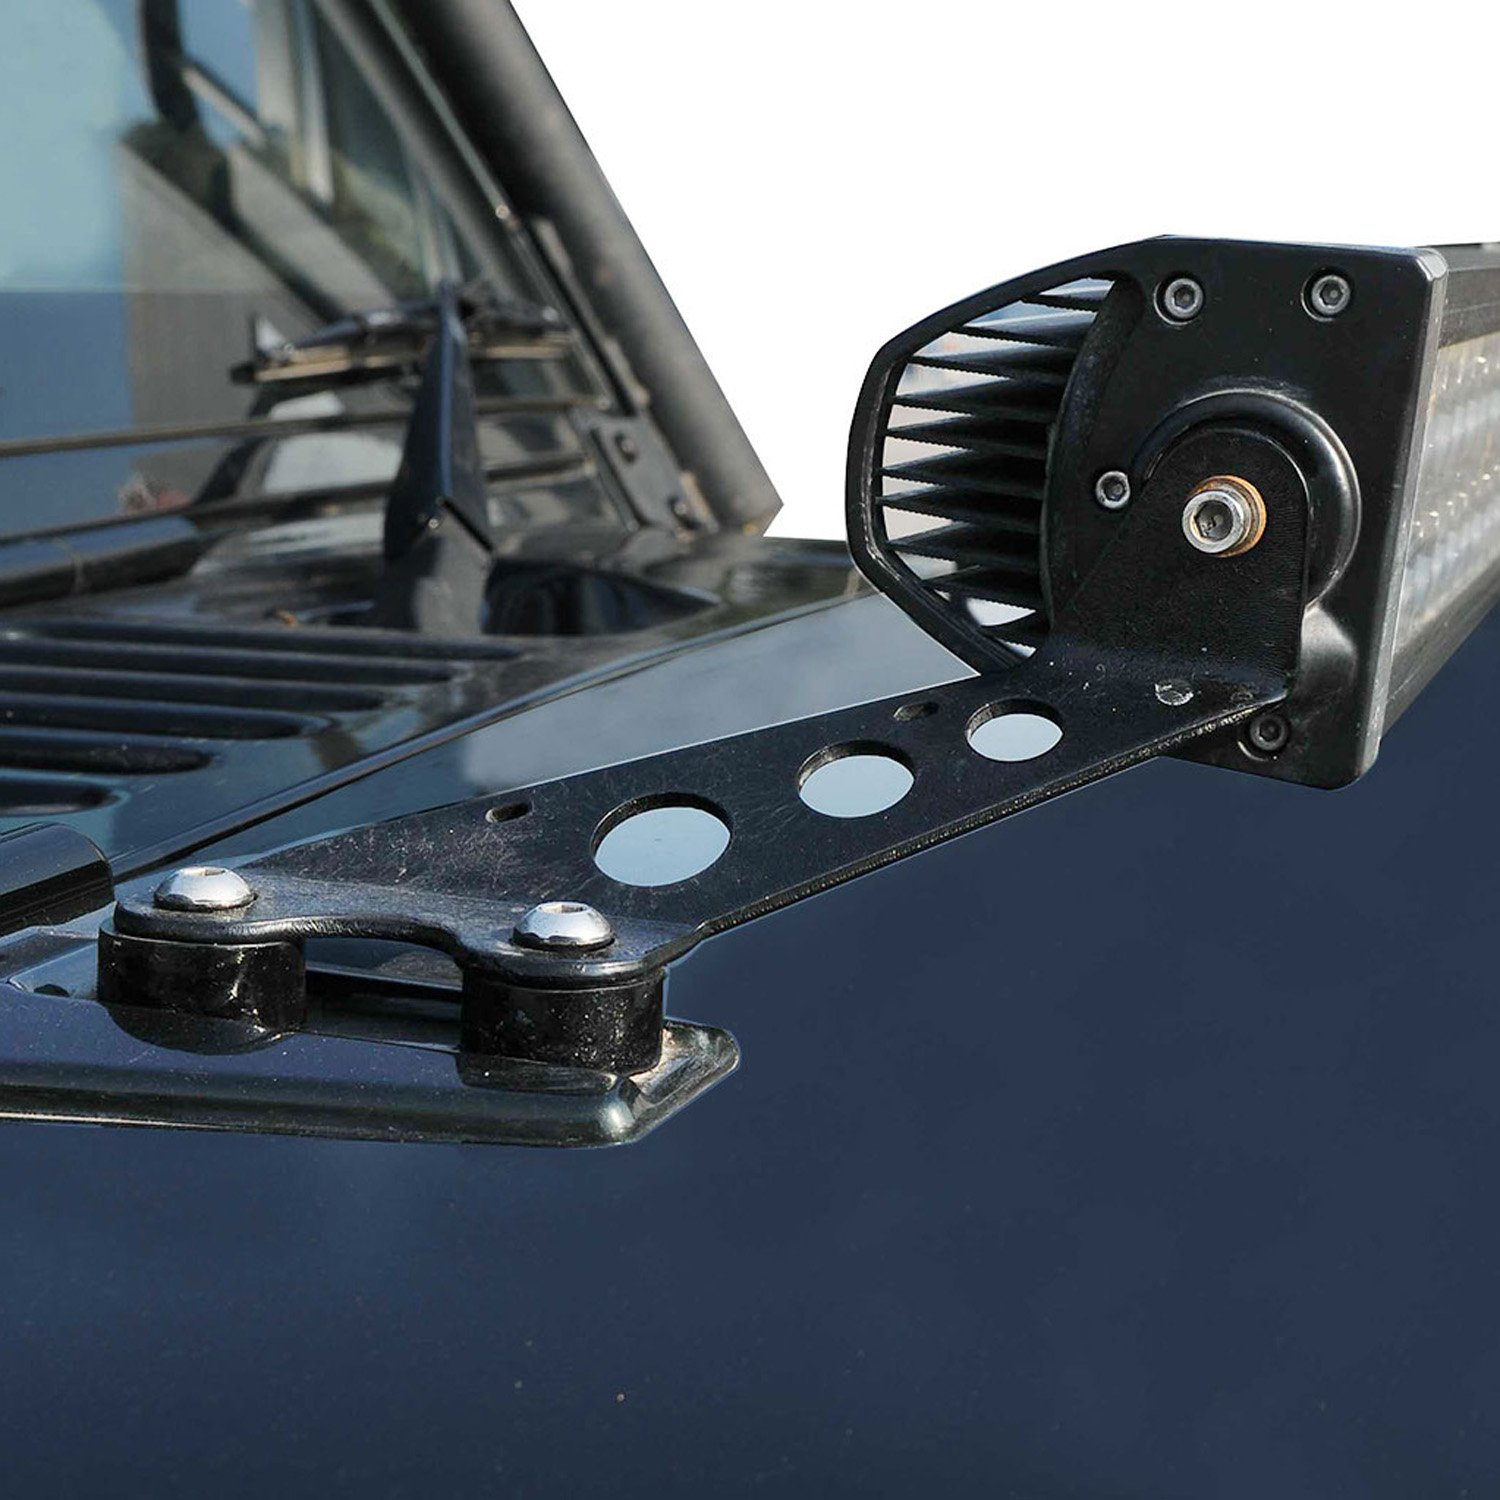 -Black 6 Inch Larson Electronics 0909P4T9QYA 2007 Peterbilt Conventional-Factory Install-Rh Side Roof Mount Spotlight 100W Halogen Driver Side with Install Kit